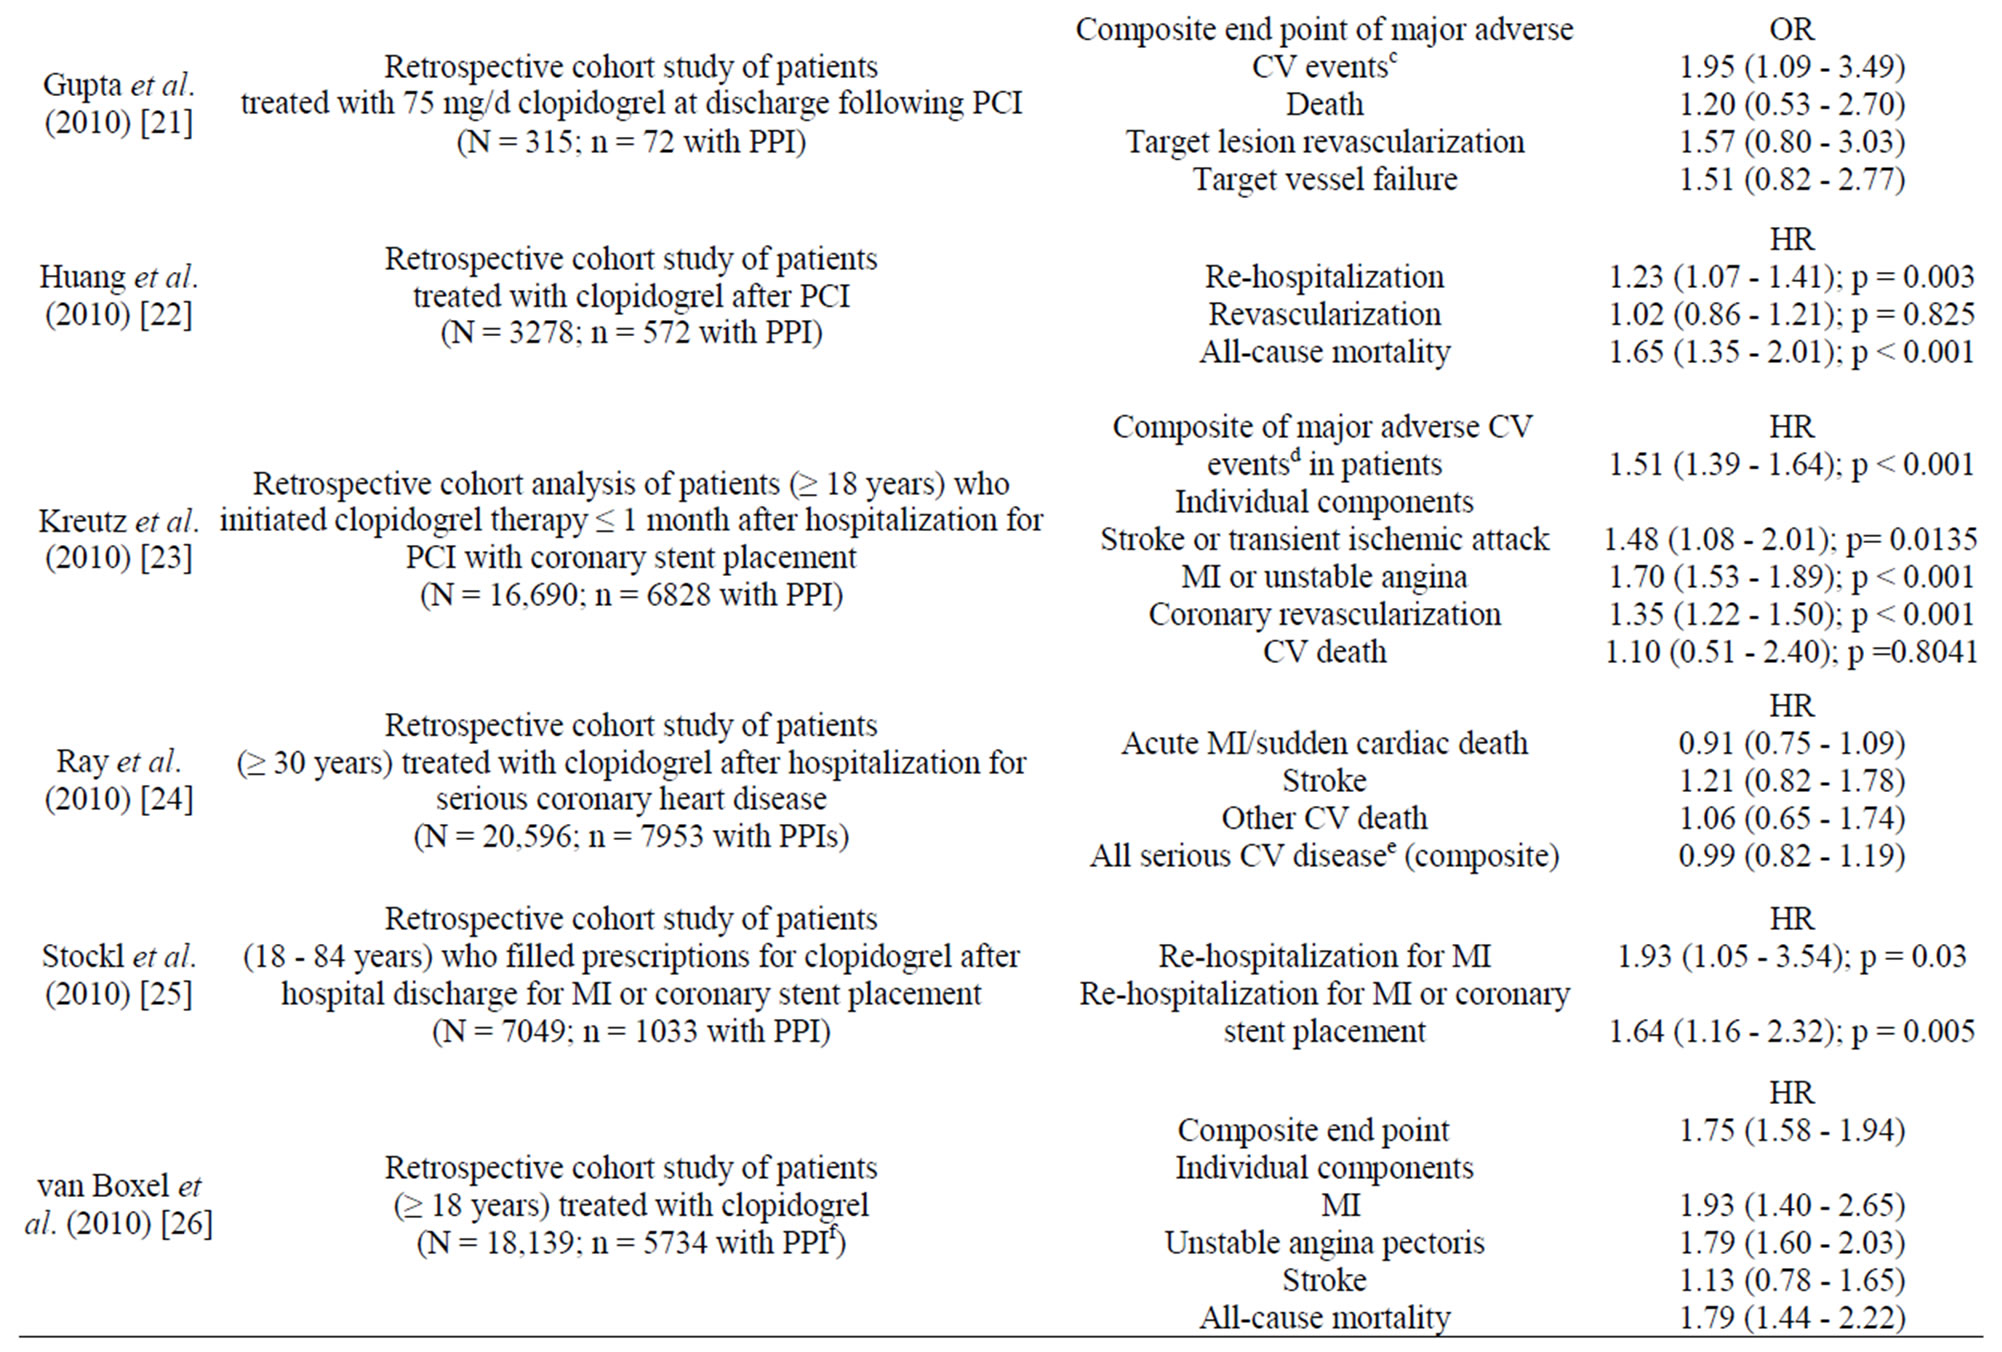 Plavix order canada.doc - Observational Studies Assessing The Effect Of Treatment With Clopidogrel And Proton Pump Inhibitors On Clinical Outcomes In Patients With Cardiovascular